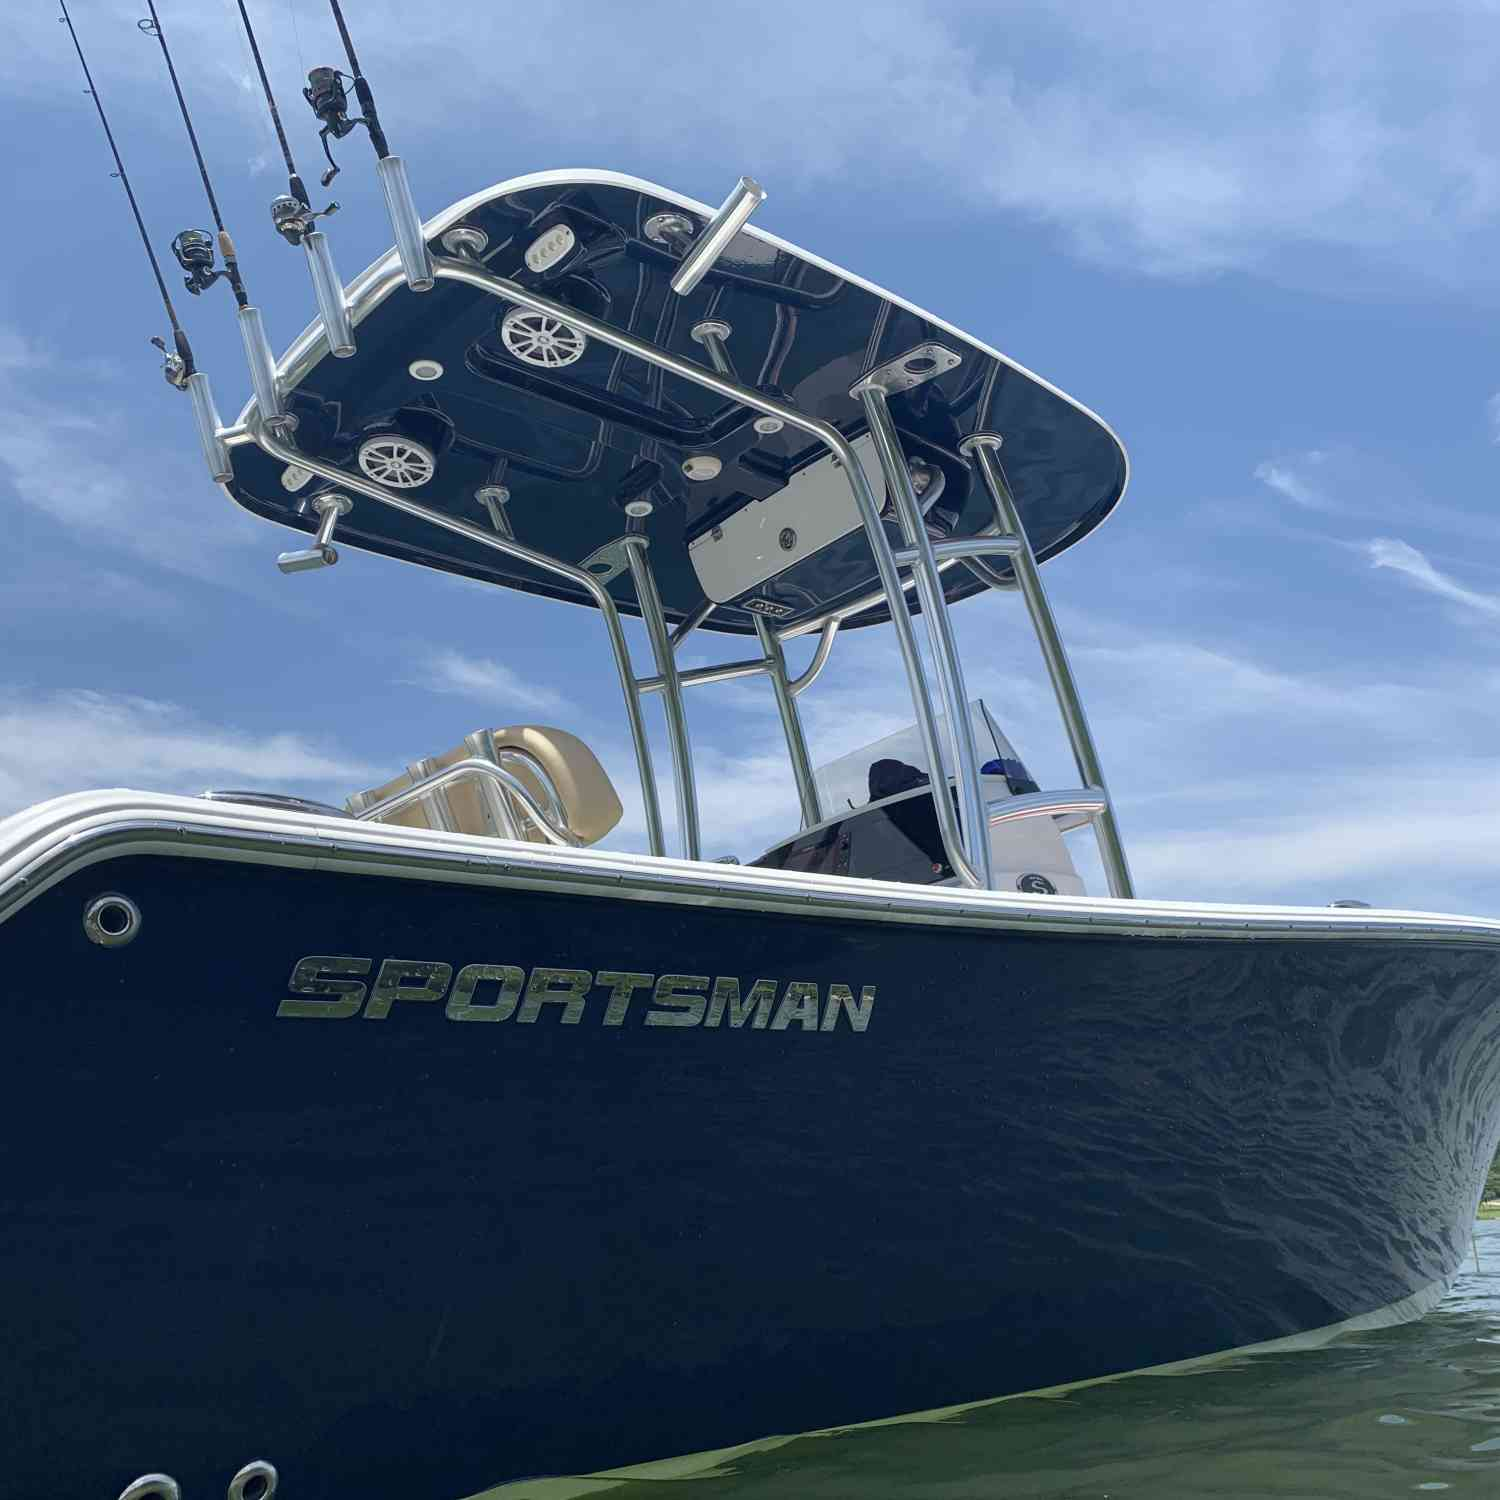 Title: Fish Eye View - On board their Sportsman Open 212 Center Console - Location: Charleston, SC. Participating in the Photo Contest #SportsmanMay2020